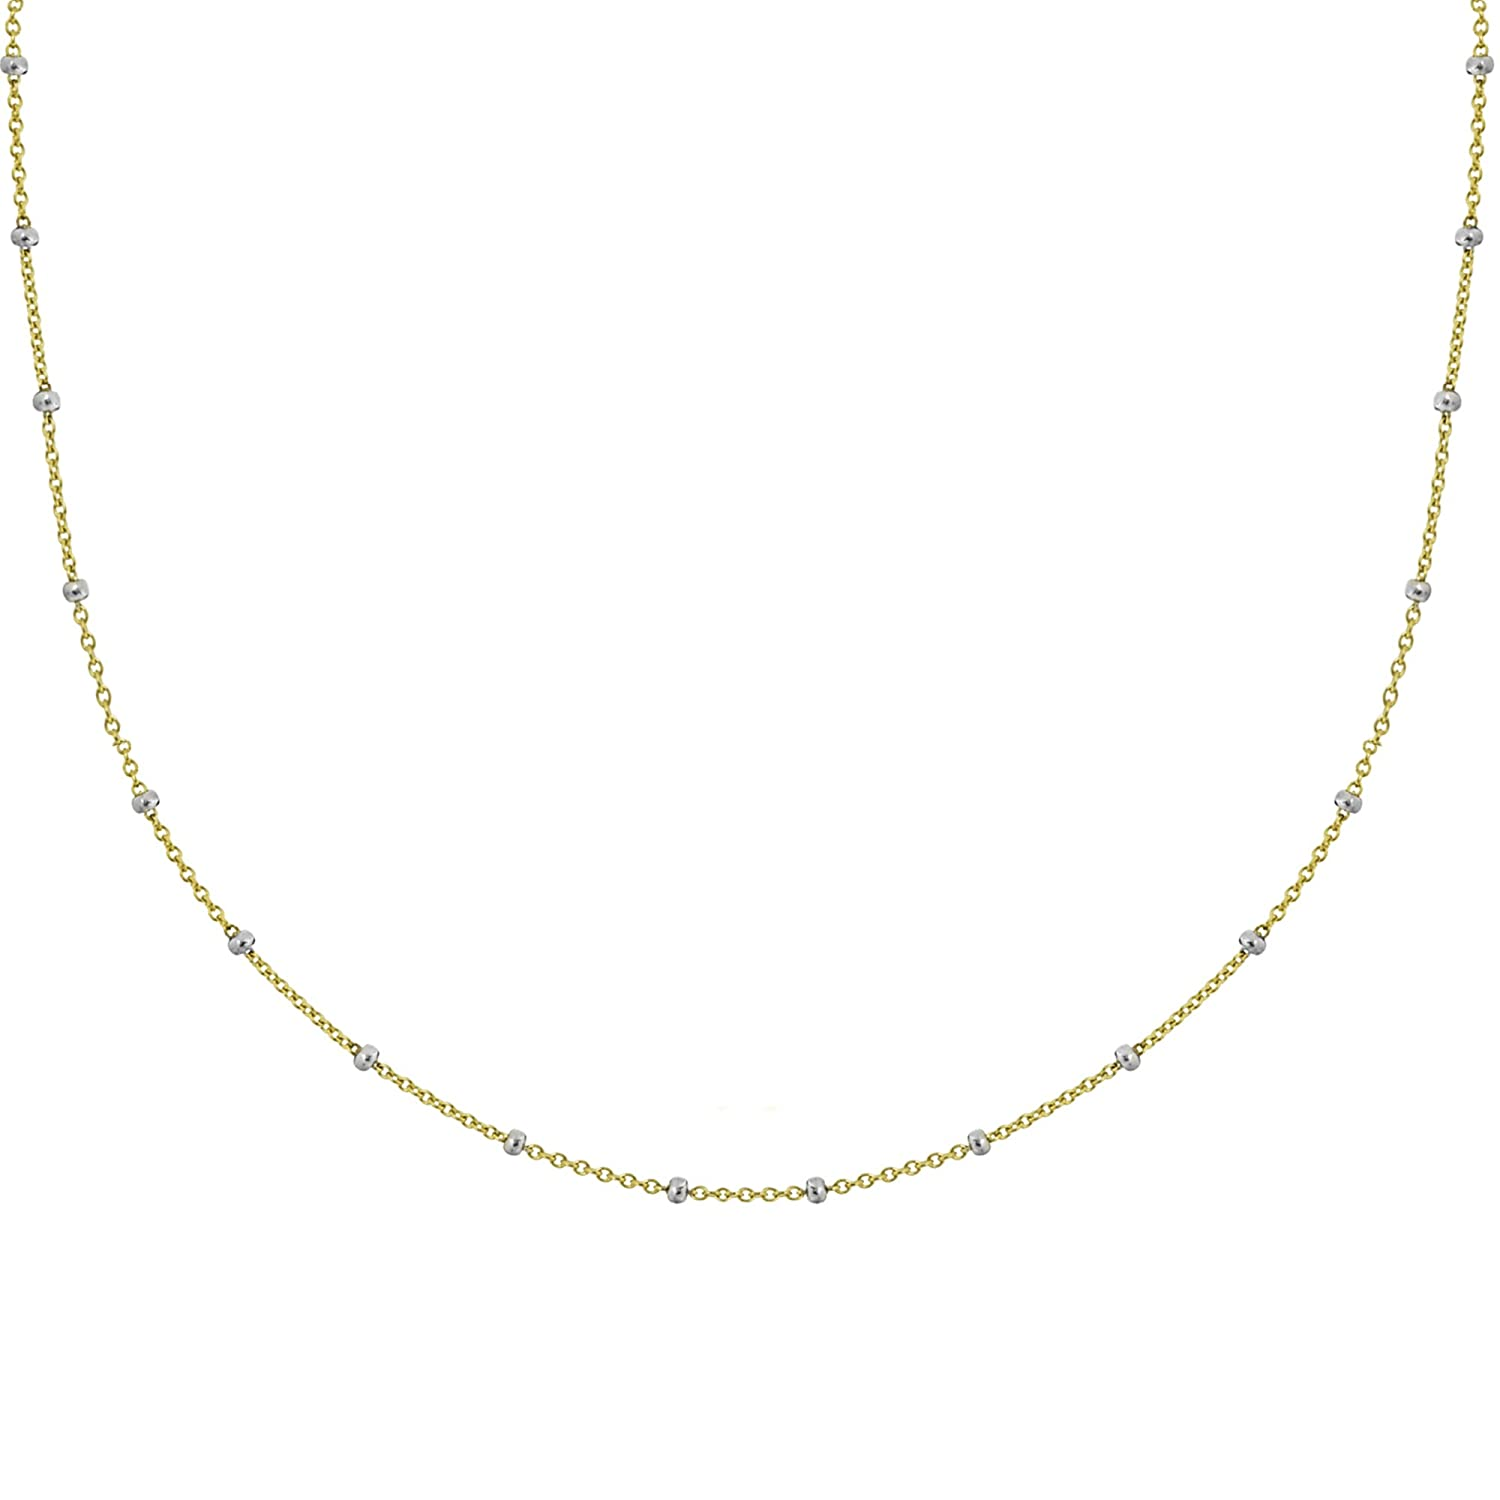 Ritastephens 14k Yellow White Gold Two Tone Saturn Beaded Station Adjustable Choker or Chain Necklace